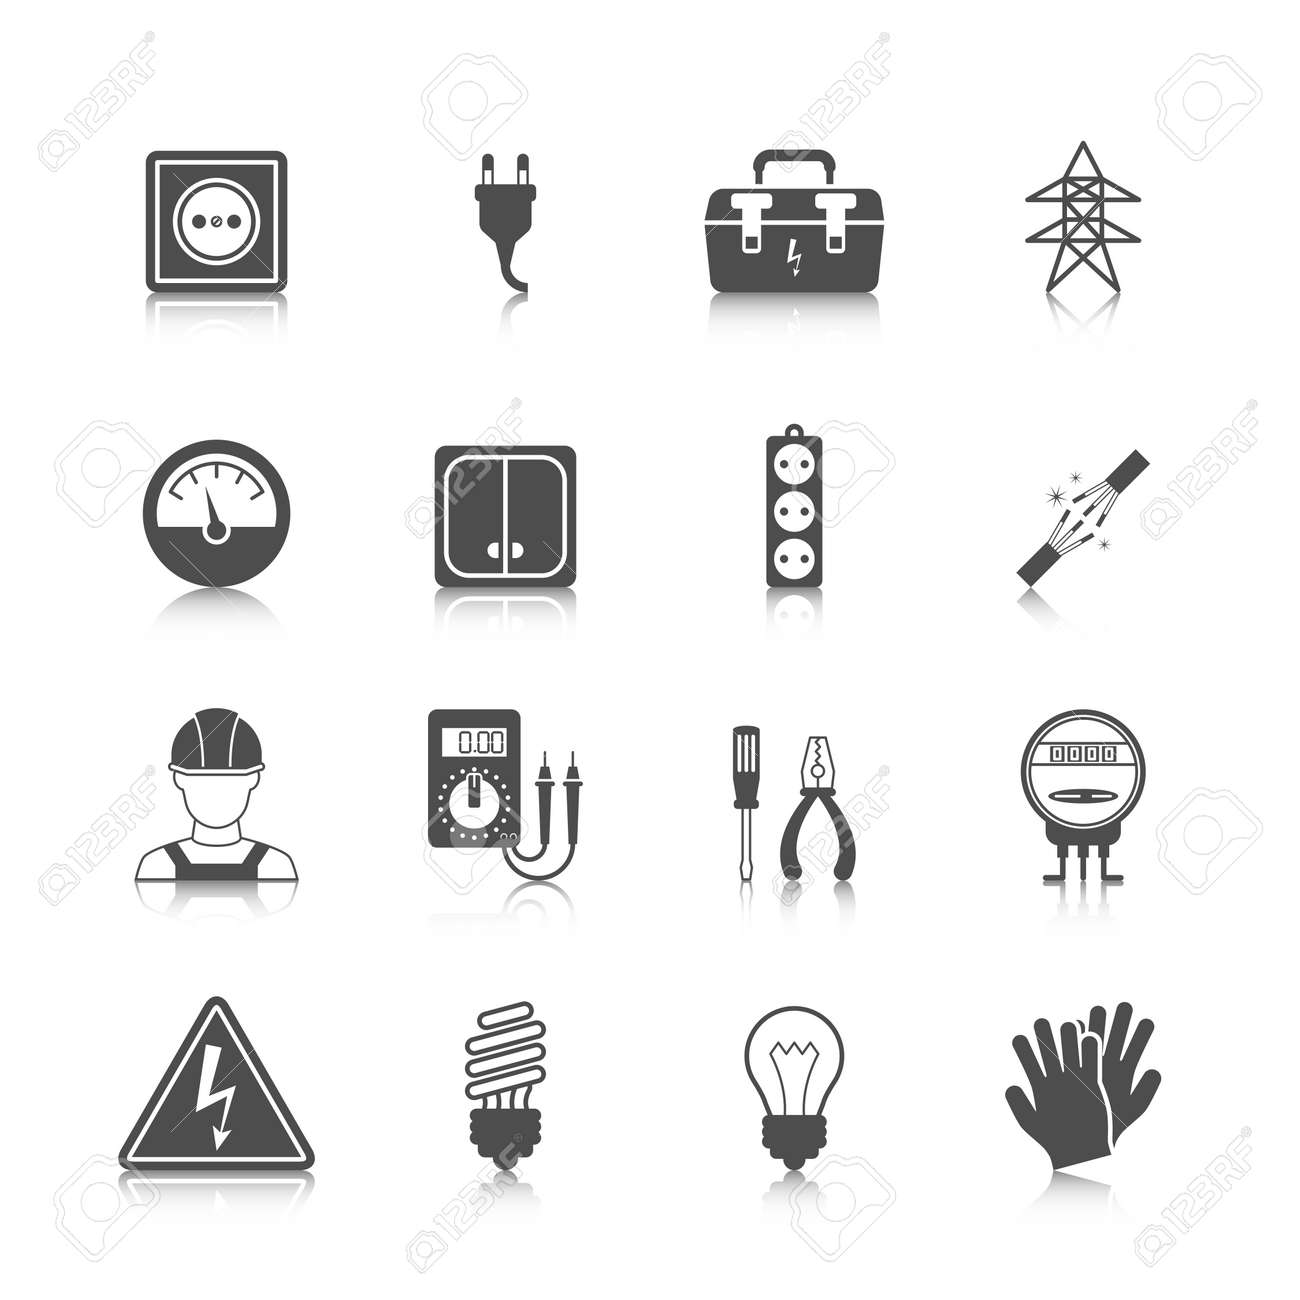 Electricity icon black set with plug socket power station isolated vector illustration - 167123482